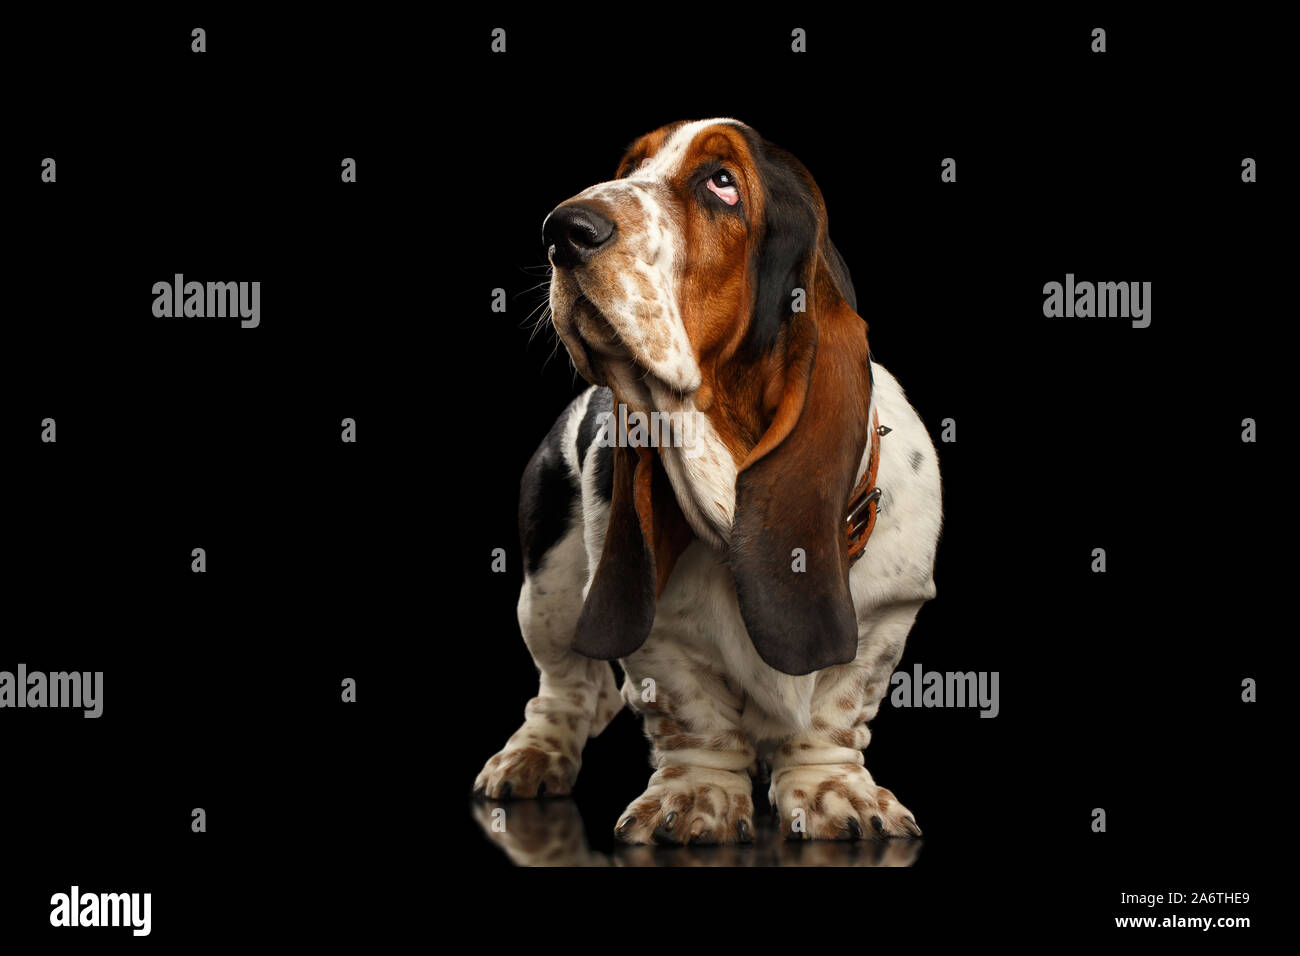 Funny Basset Hound Dog Standing And Looks Indifferent On Isolated Black Background Side View Stock Photo Alamy